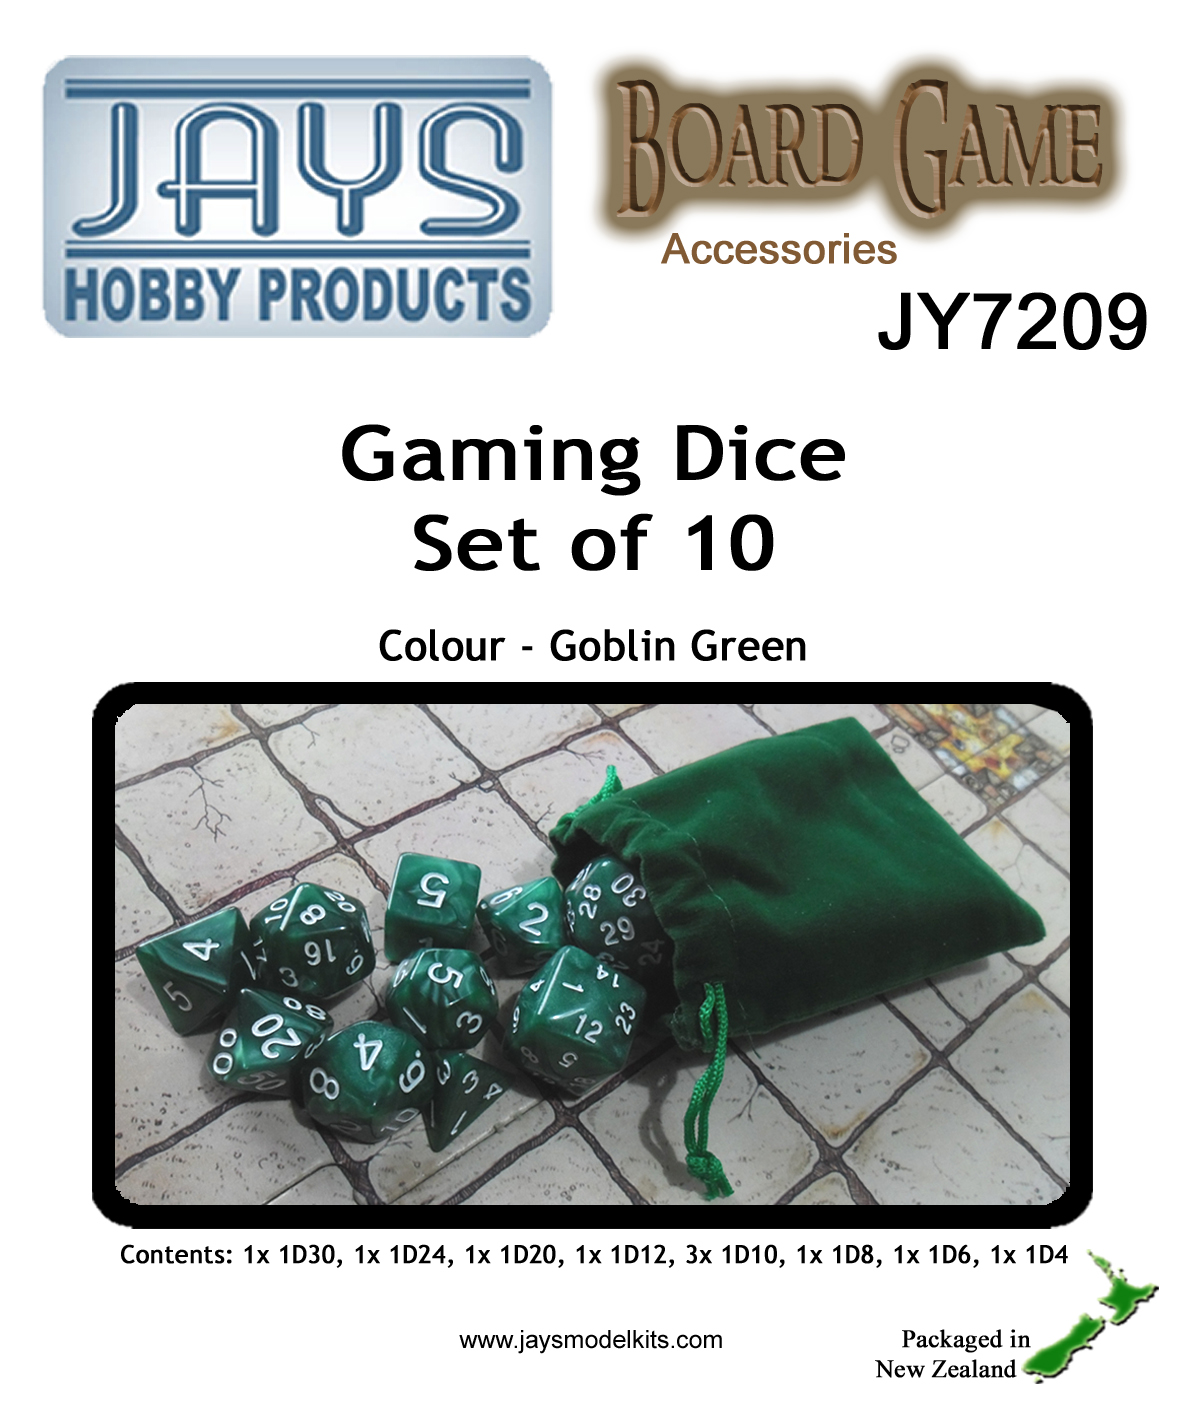 JY7209 Gaming Dice Set of Ten - Colour: Goblin Green